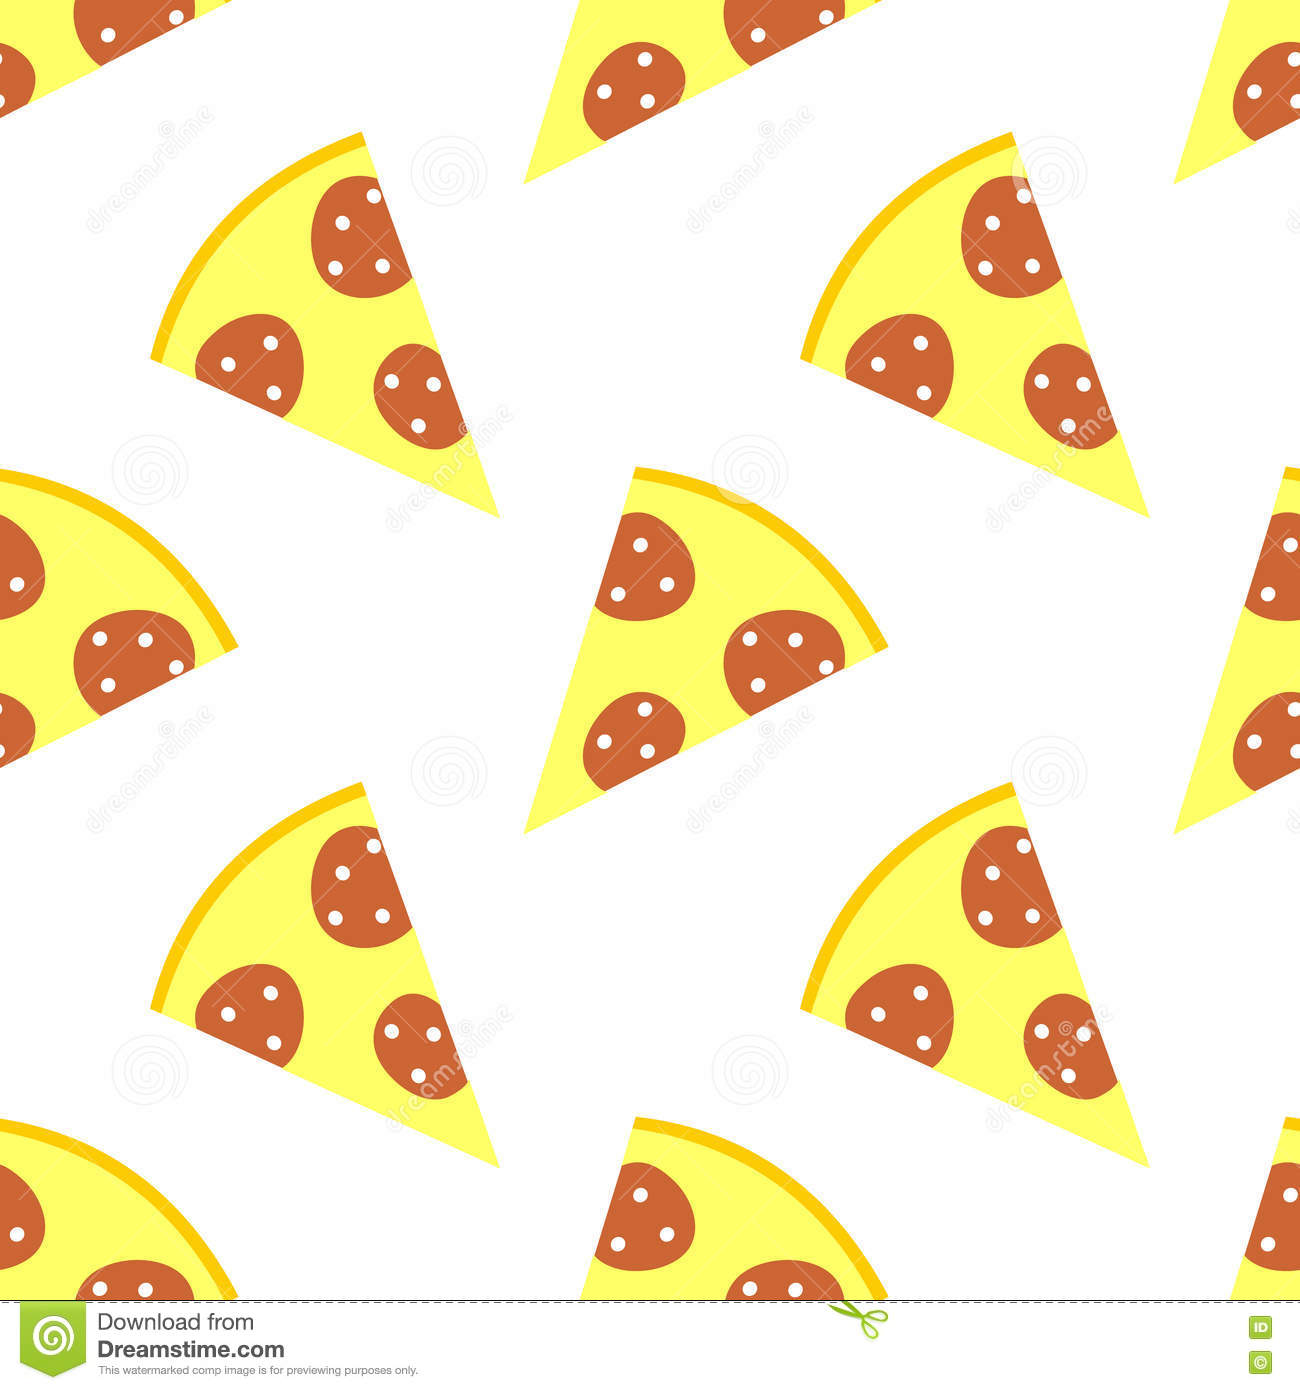 repeating pizza background - photo #24